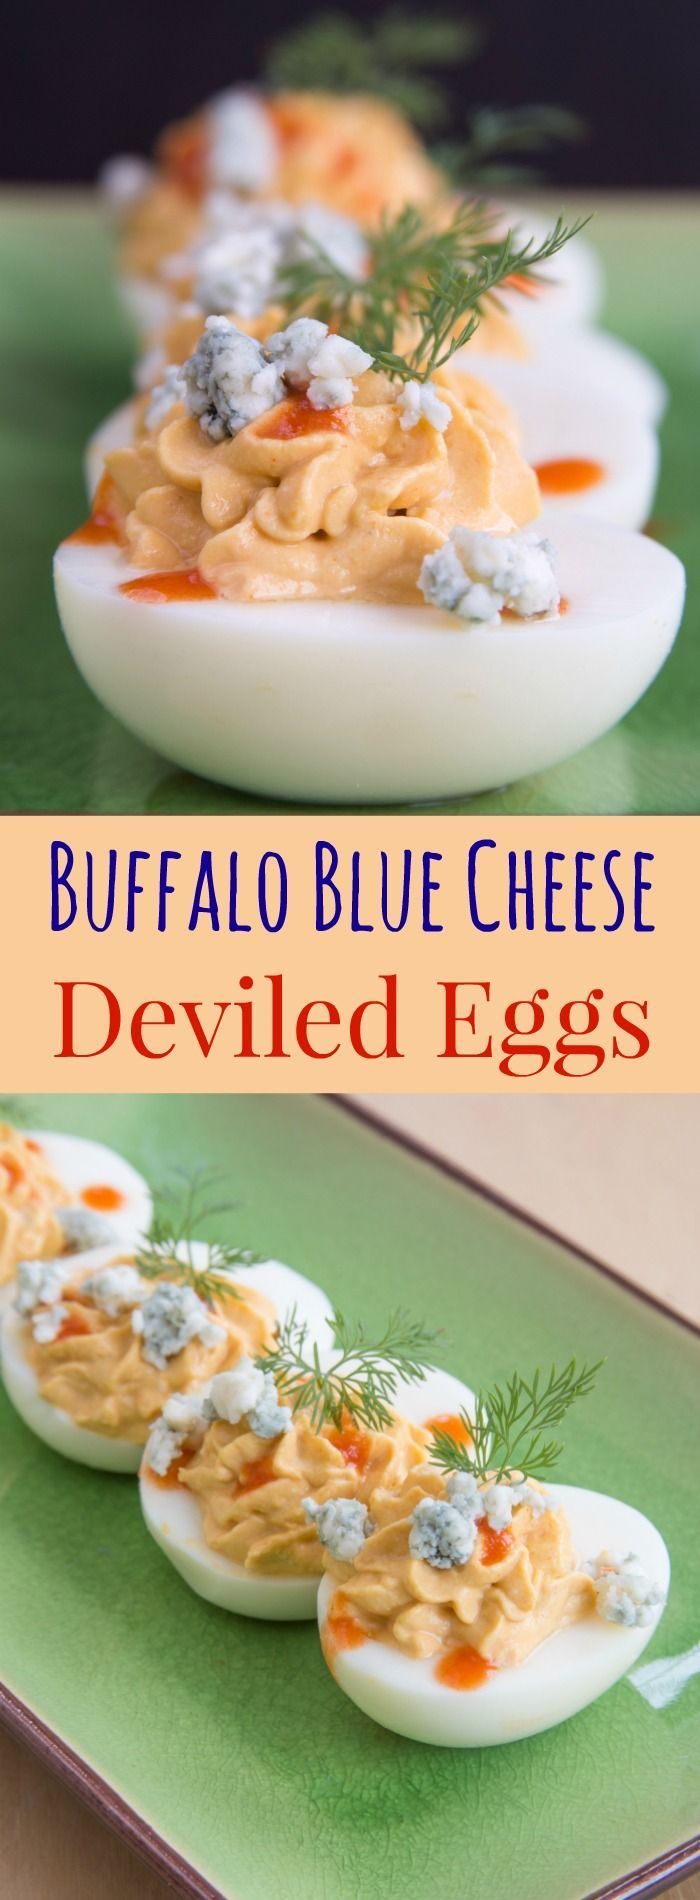 Buffalo Blue Cheese Deviled Eggs - this spicy twist on the classic deviled egg recipe adds your favorite wing flavors of hot sauce and blue cheese to the classic picnic menu staple. A perfect party appetizer or a low carb, high protein snack.